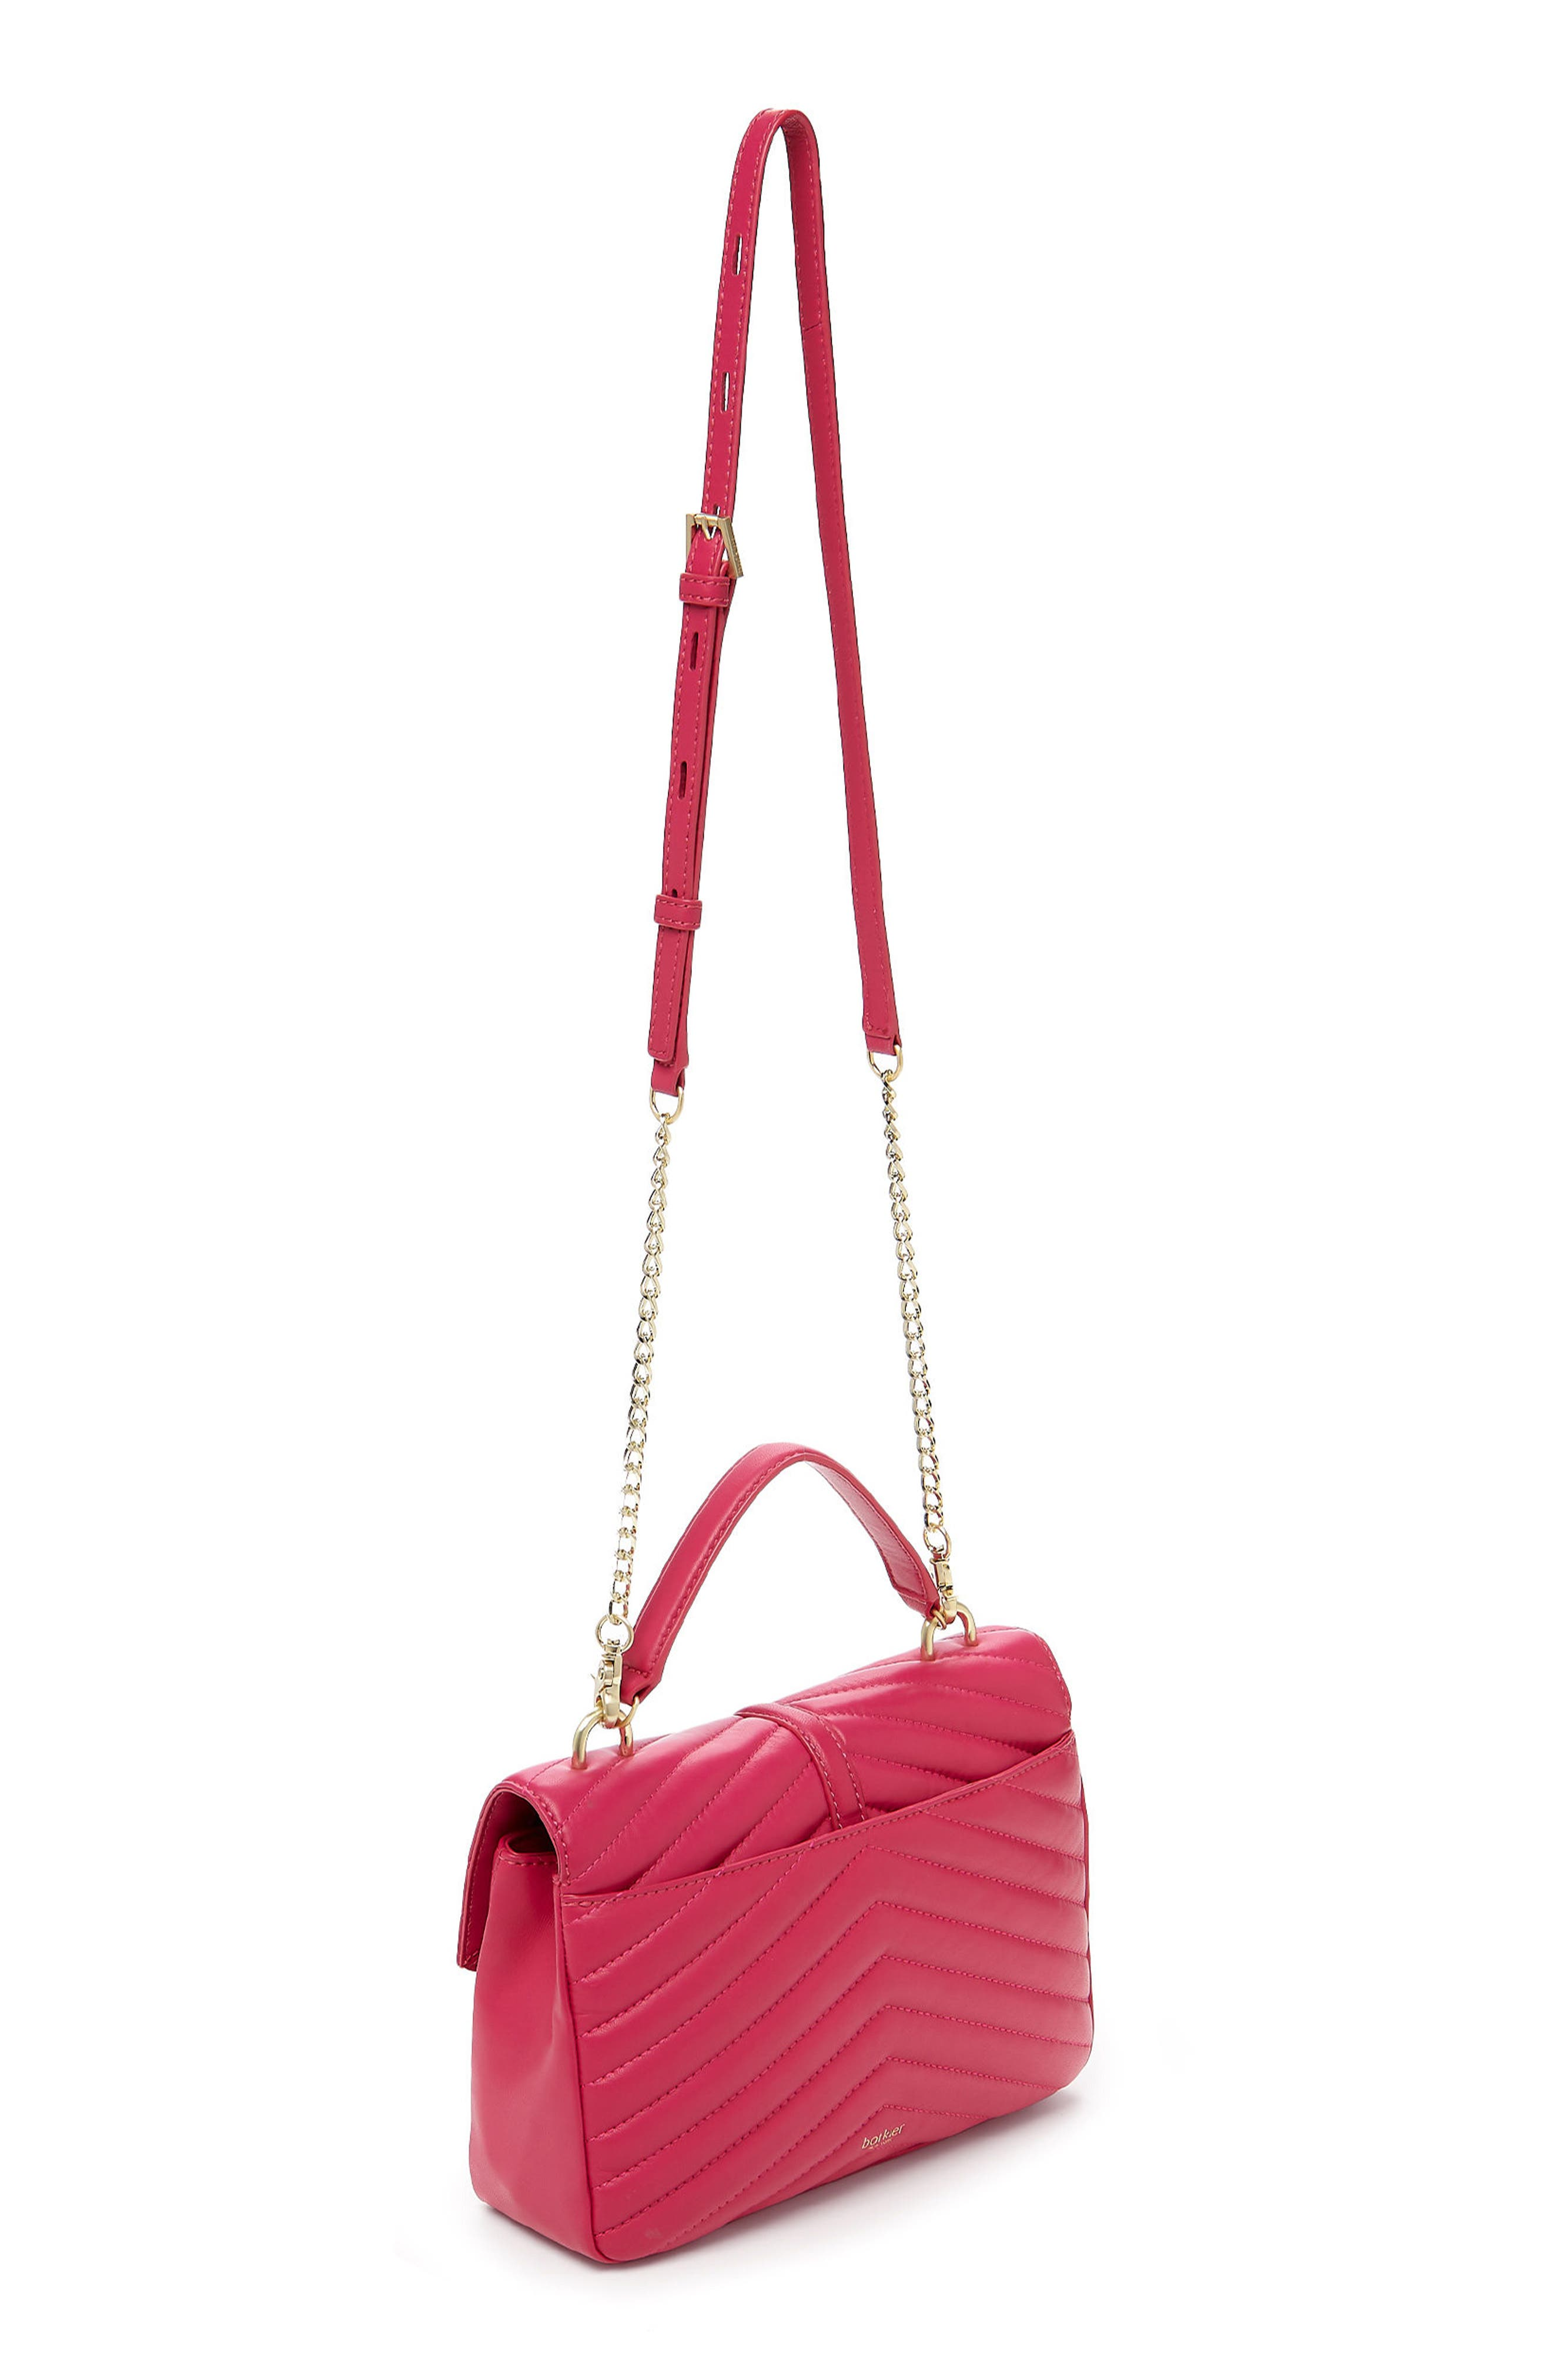 Dakota Quilted Leather Top Handle Bag,                             Alternate thumbnail 2, color,                             Pink